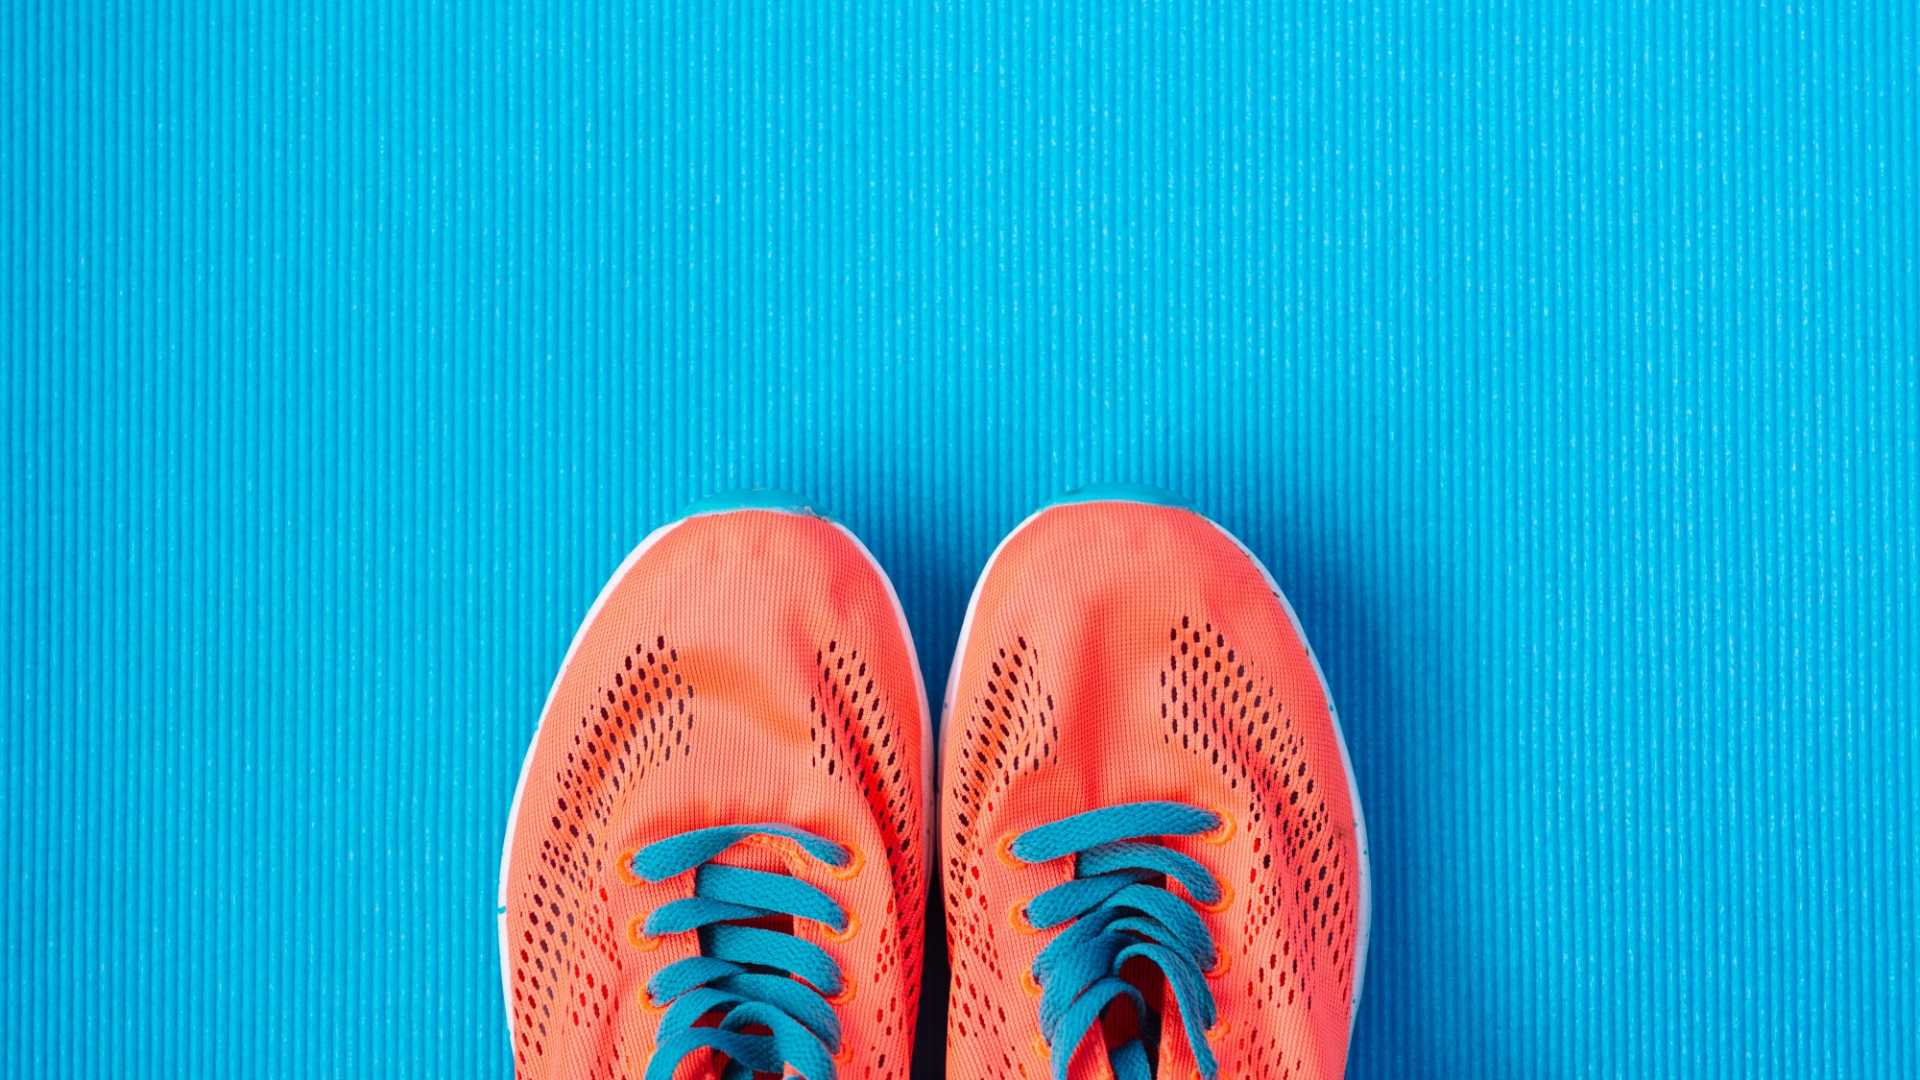 Make This 1 Simple Change, and You'll Probably End Up Exercising More